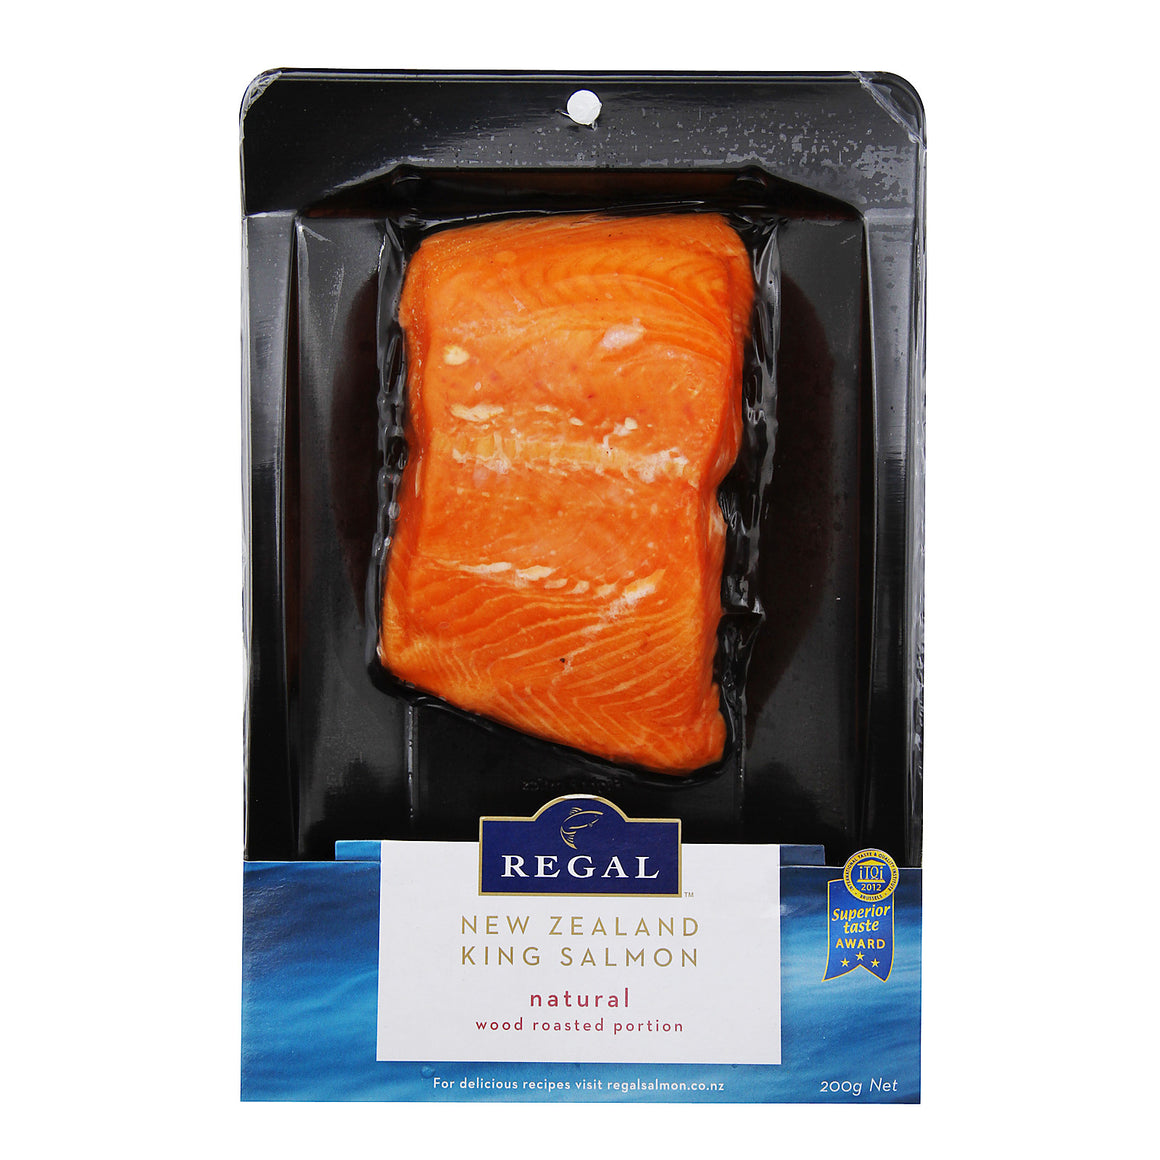 Regal - Marlborough King Salmon Natural portion 200g